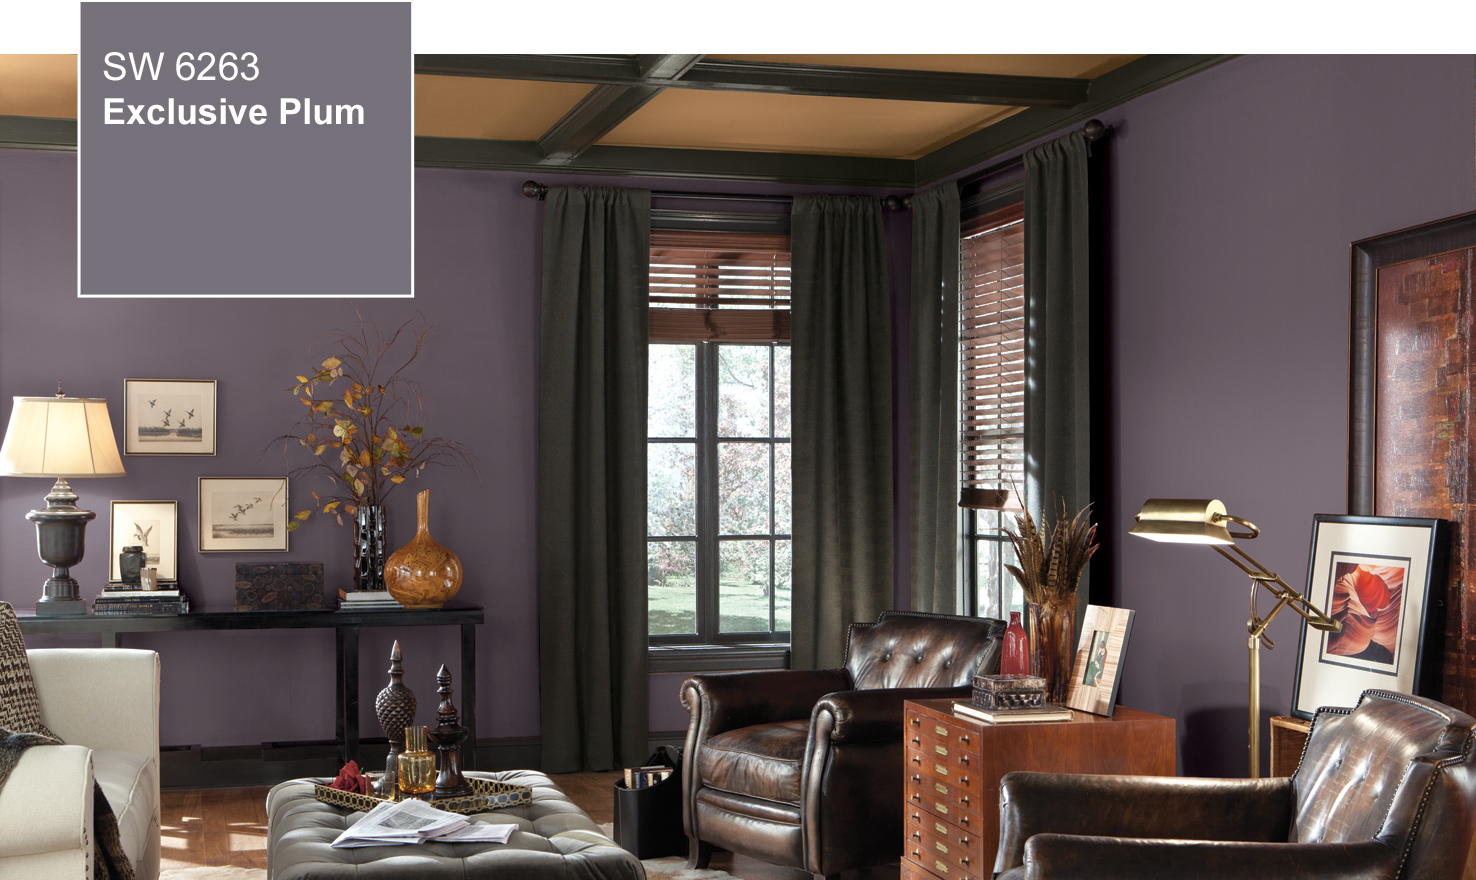 http://www.sherwin-williams.com/wcm/idc/groups/public/@swpublic/@sherwin-williams/@content/documents/webcontent/mdaw/mdmz/~edisp/sw-img-coty-den-hdr.jpg